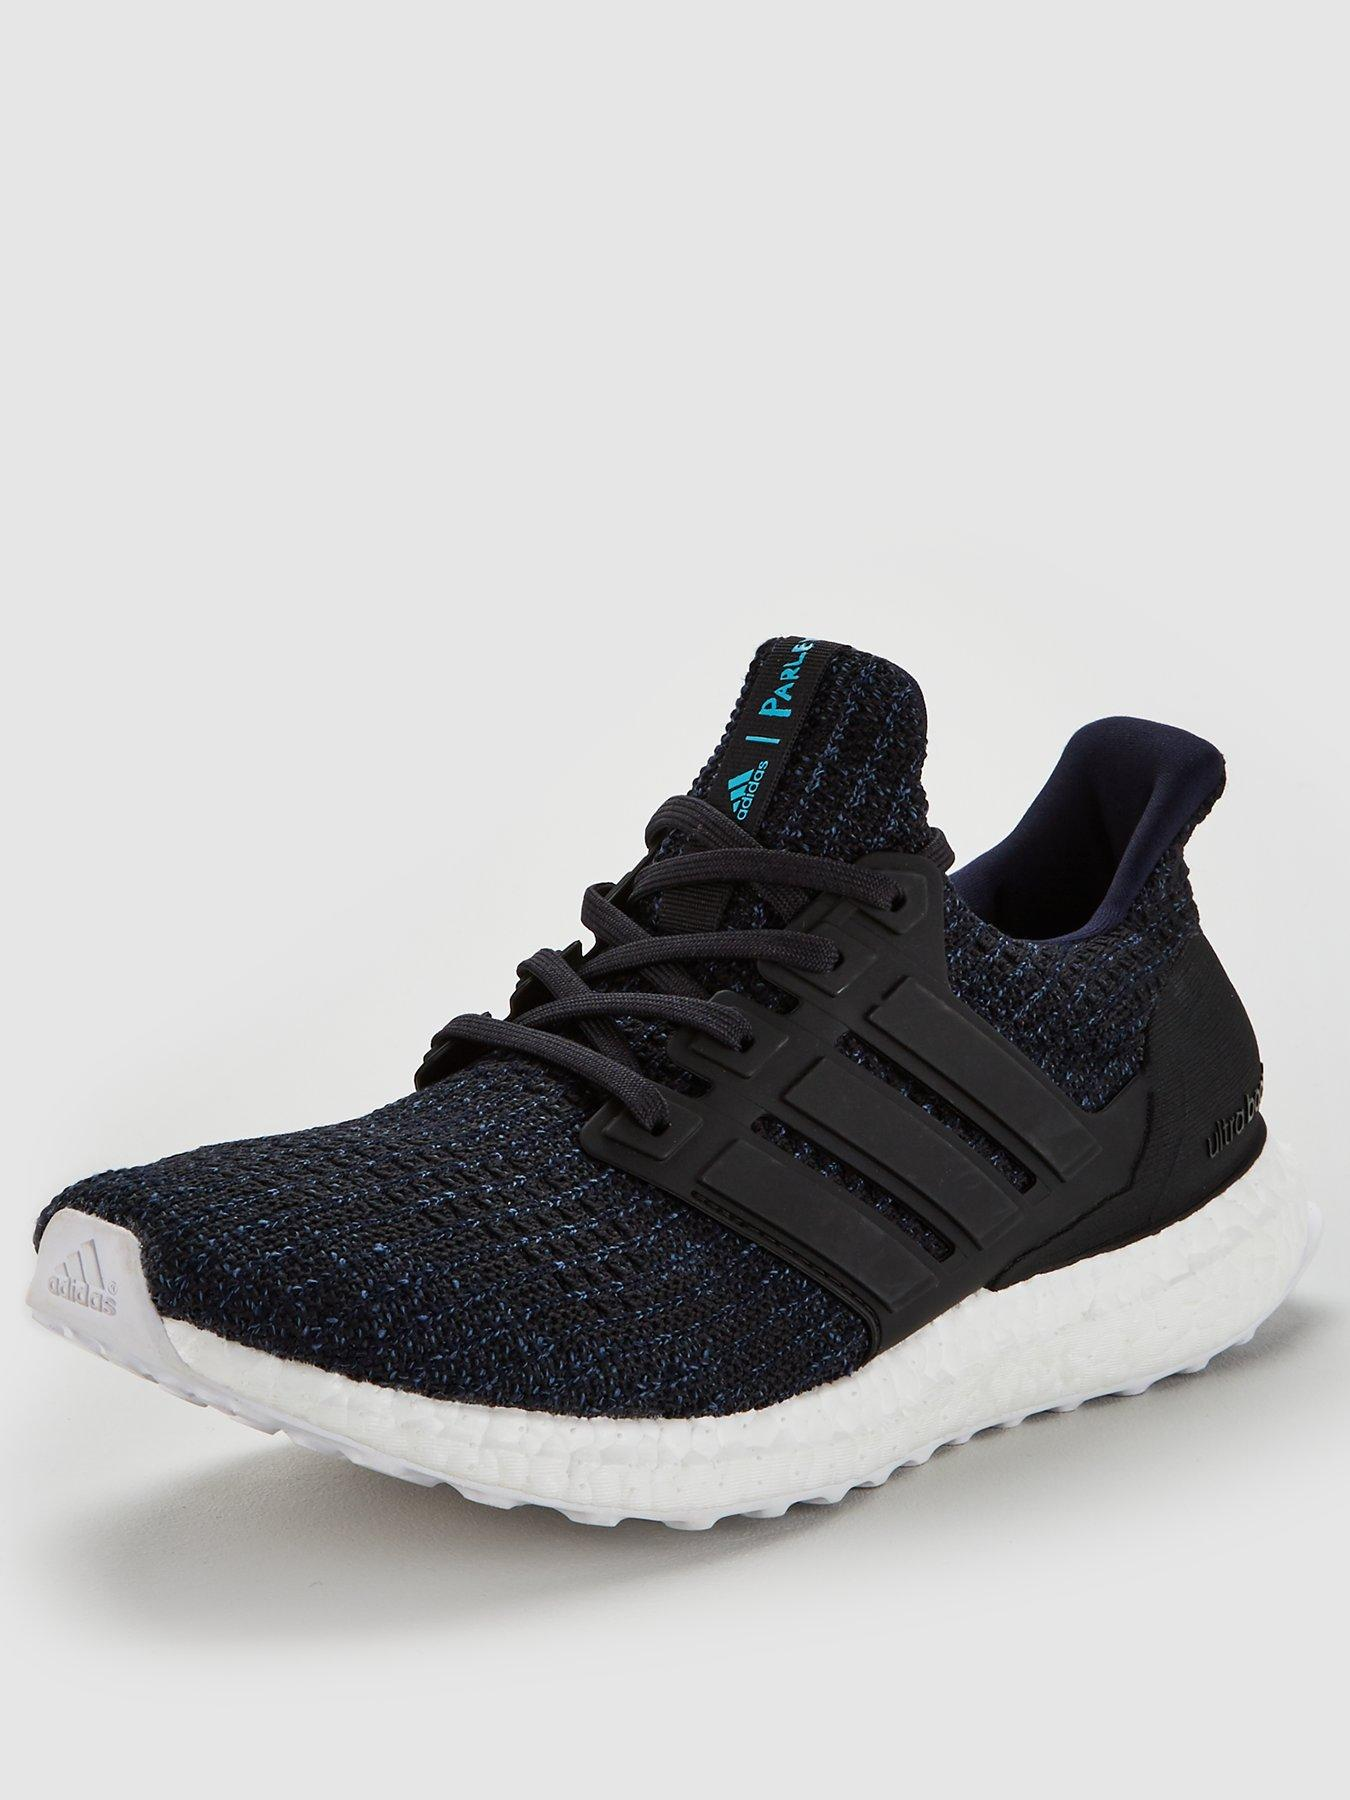 9bb80862845 usa mens adidas ultra boost running shoes ash pearl black f9dfa 81e52  get adidas  ultraboost parley 0054c ef917